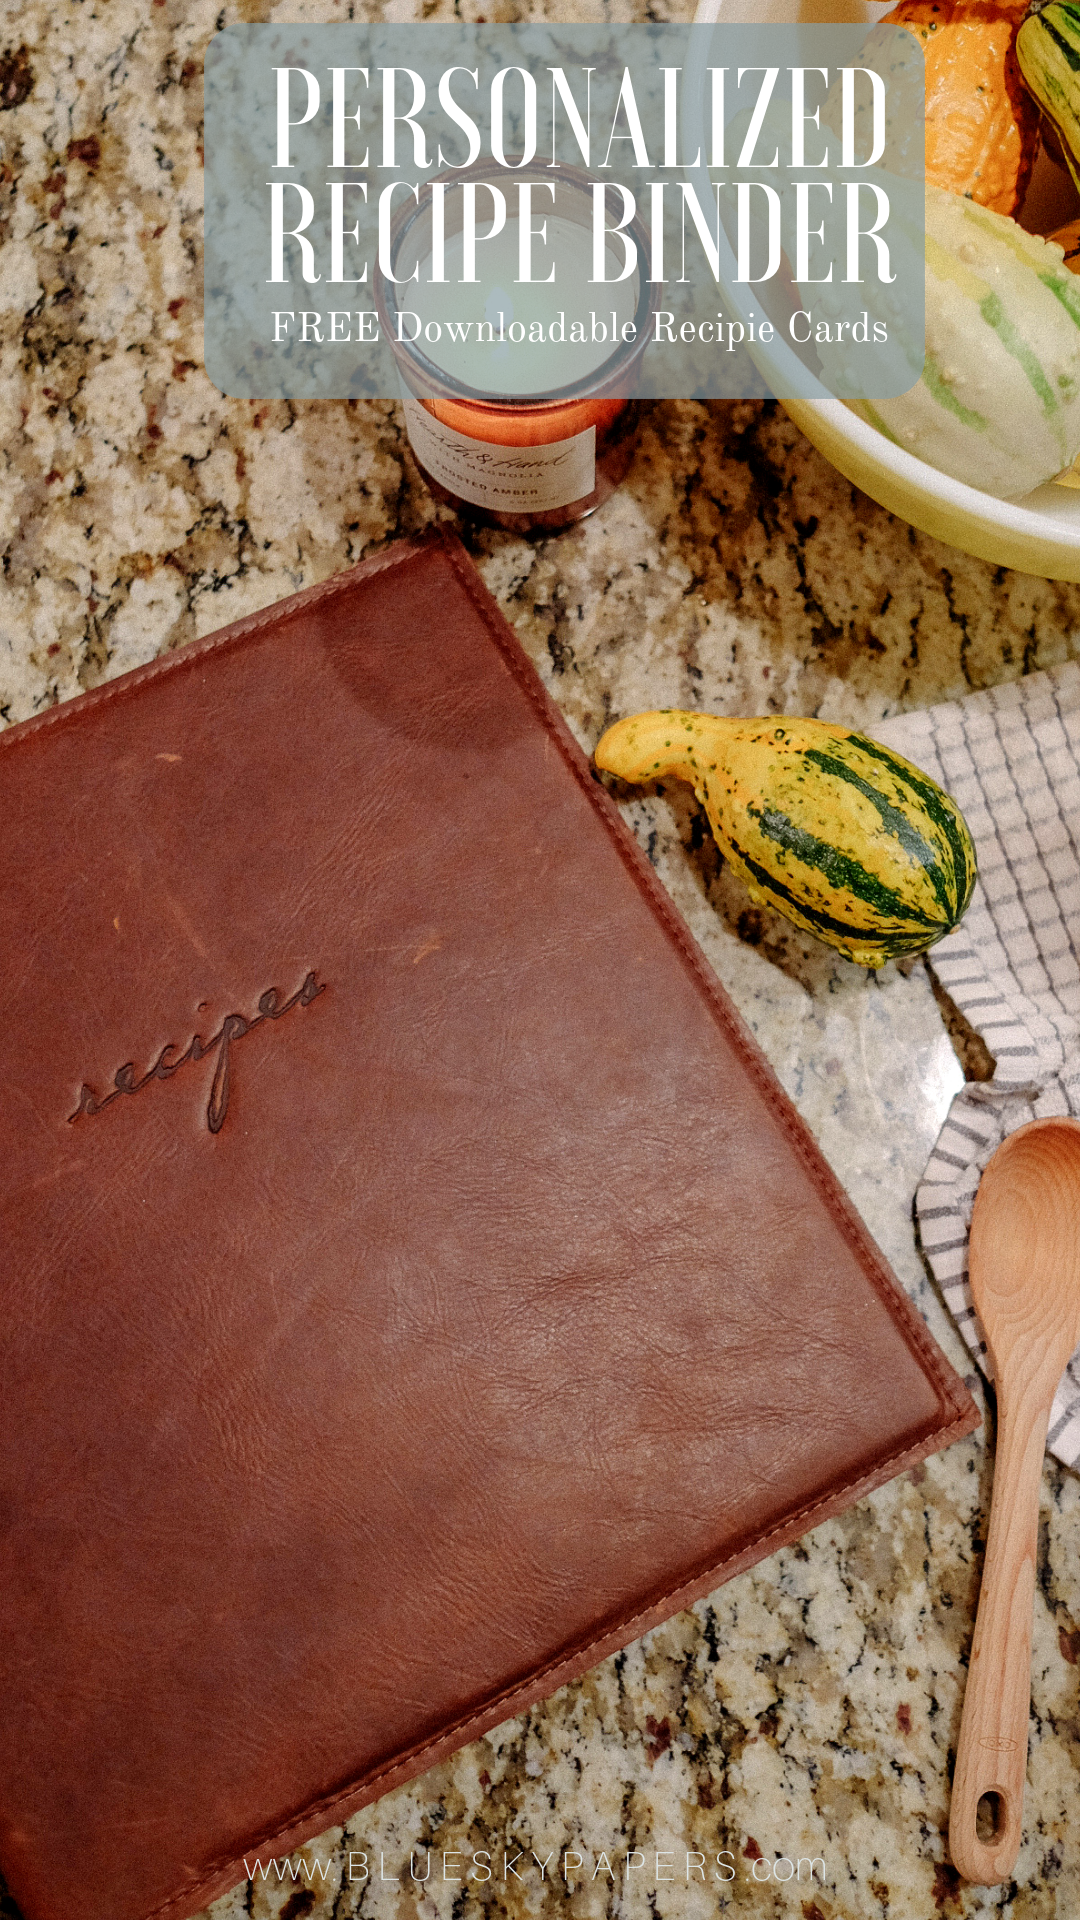 personalized recipe binder with free downloadable recipe cards the